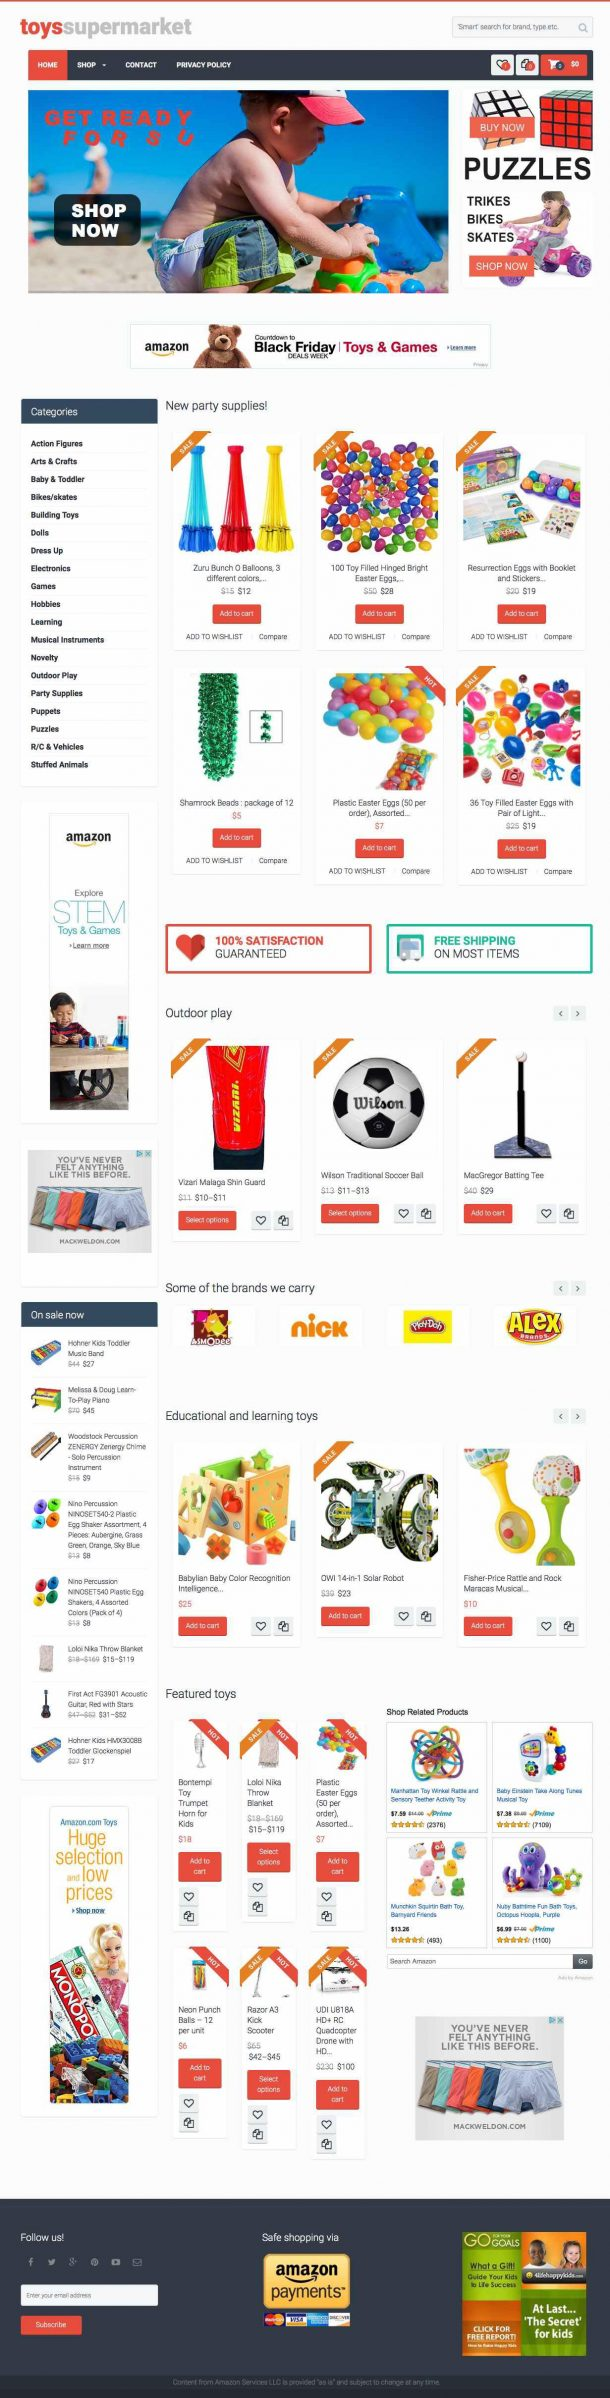 Toys_supermarket_–_The_latest_toys_for_kids_of_all_ages